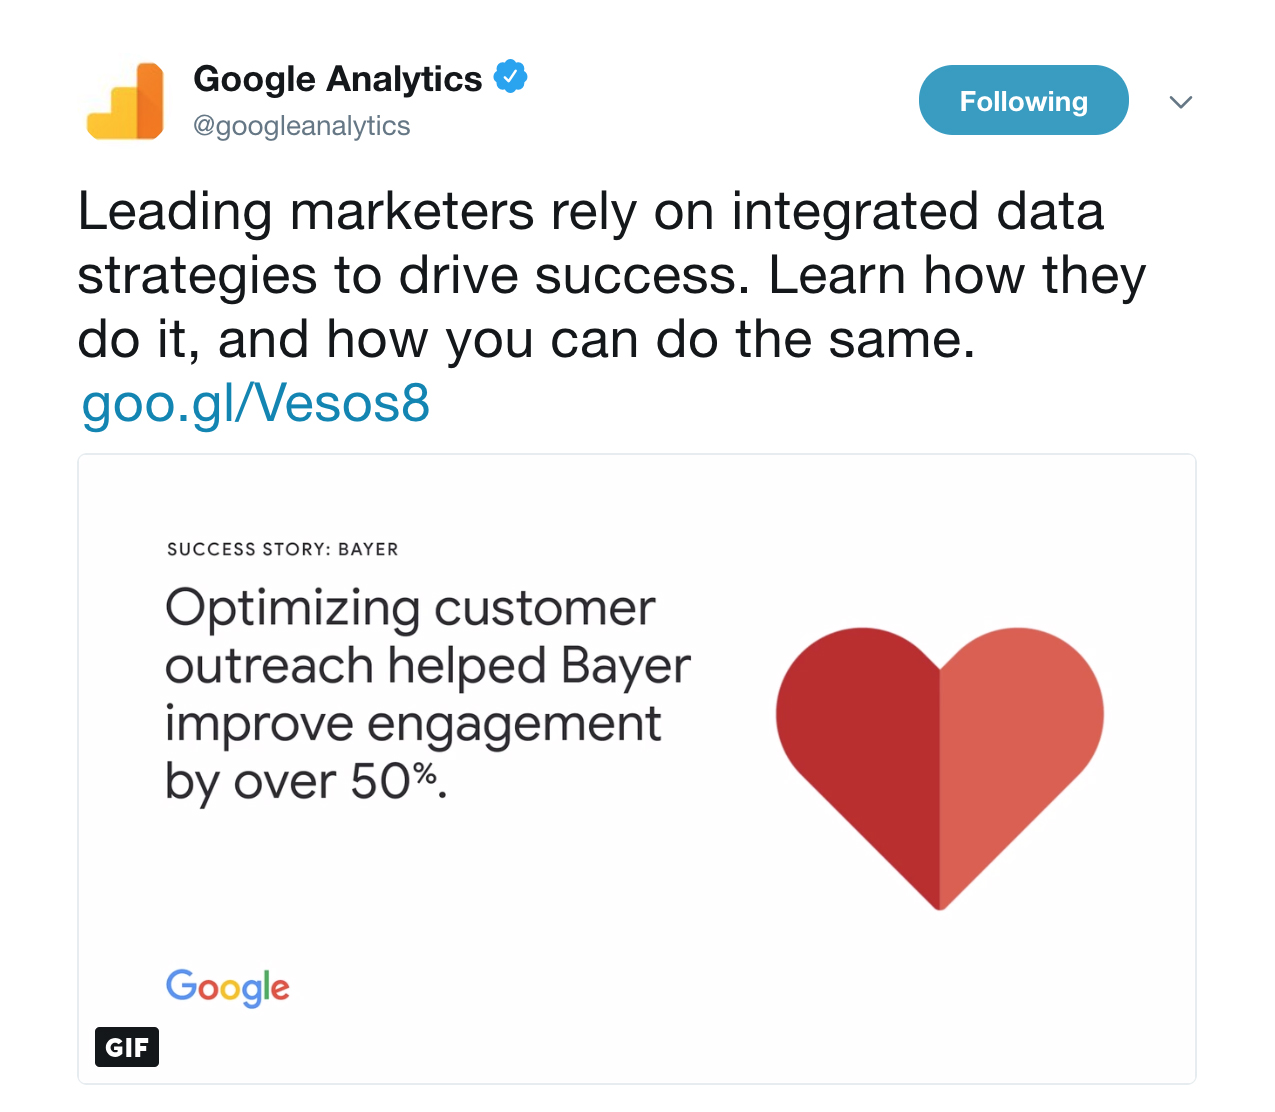 google-analytics-tweet-13.jpg